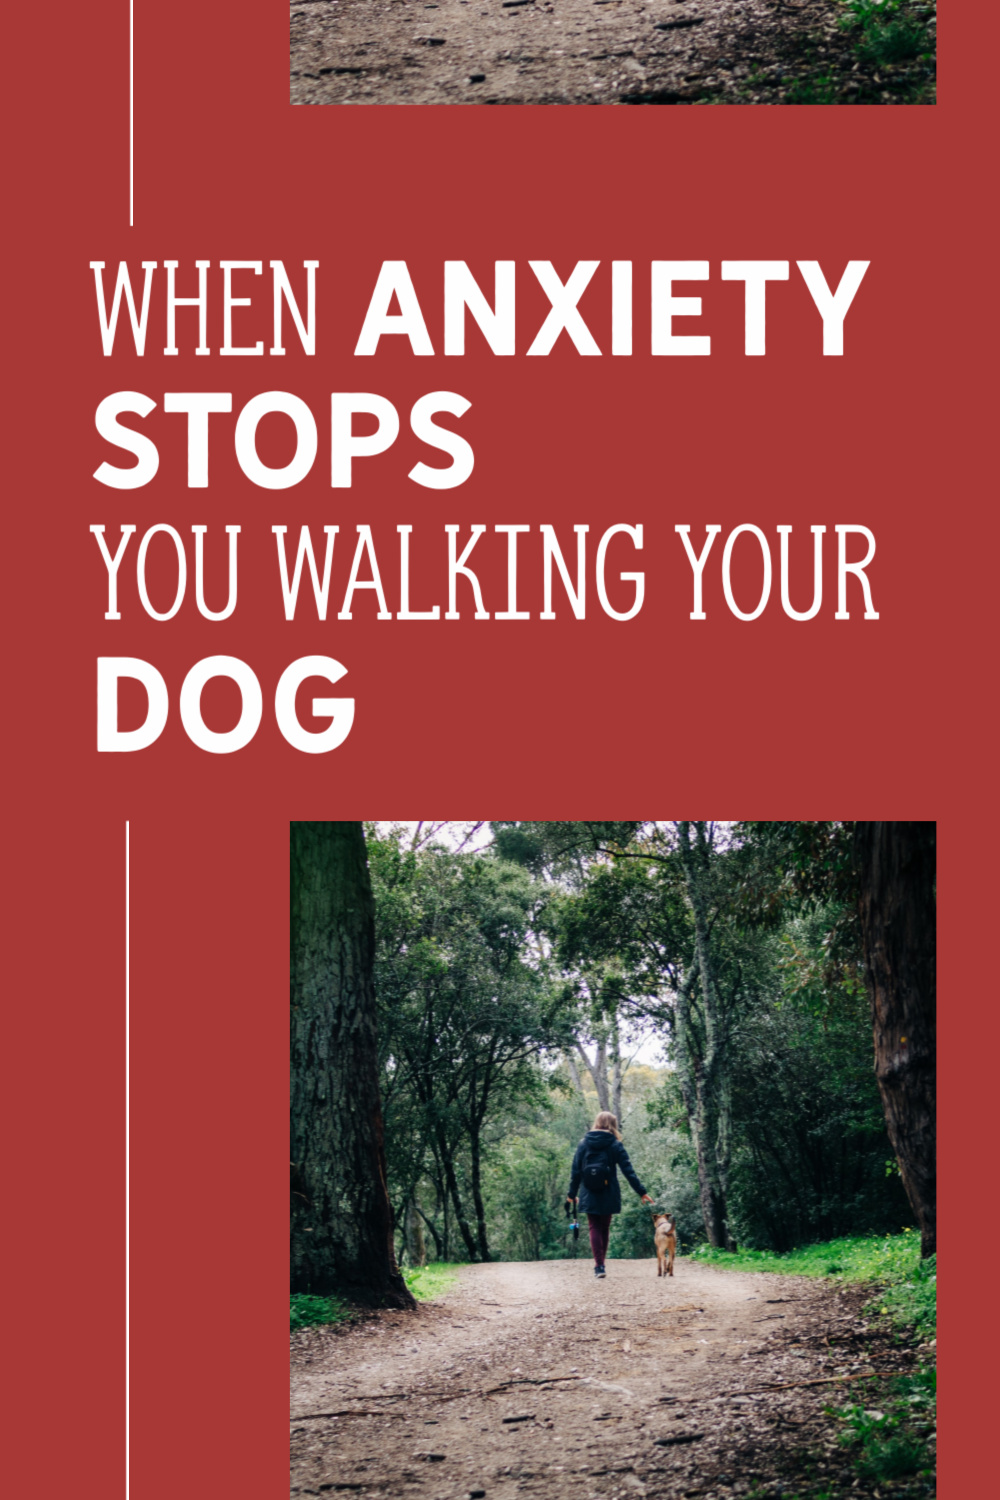 When Anxiety Stops You Walking Your Dog {Walks With Your Dog} #DogAnxiety #Anxiety #Dogs&Humans #DogWalks #DogHealth www.scruffylittleterrier.com